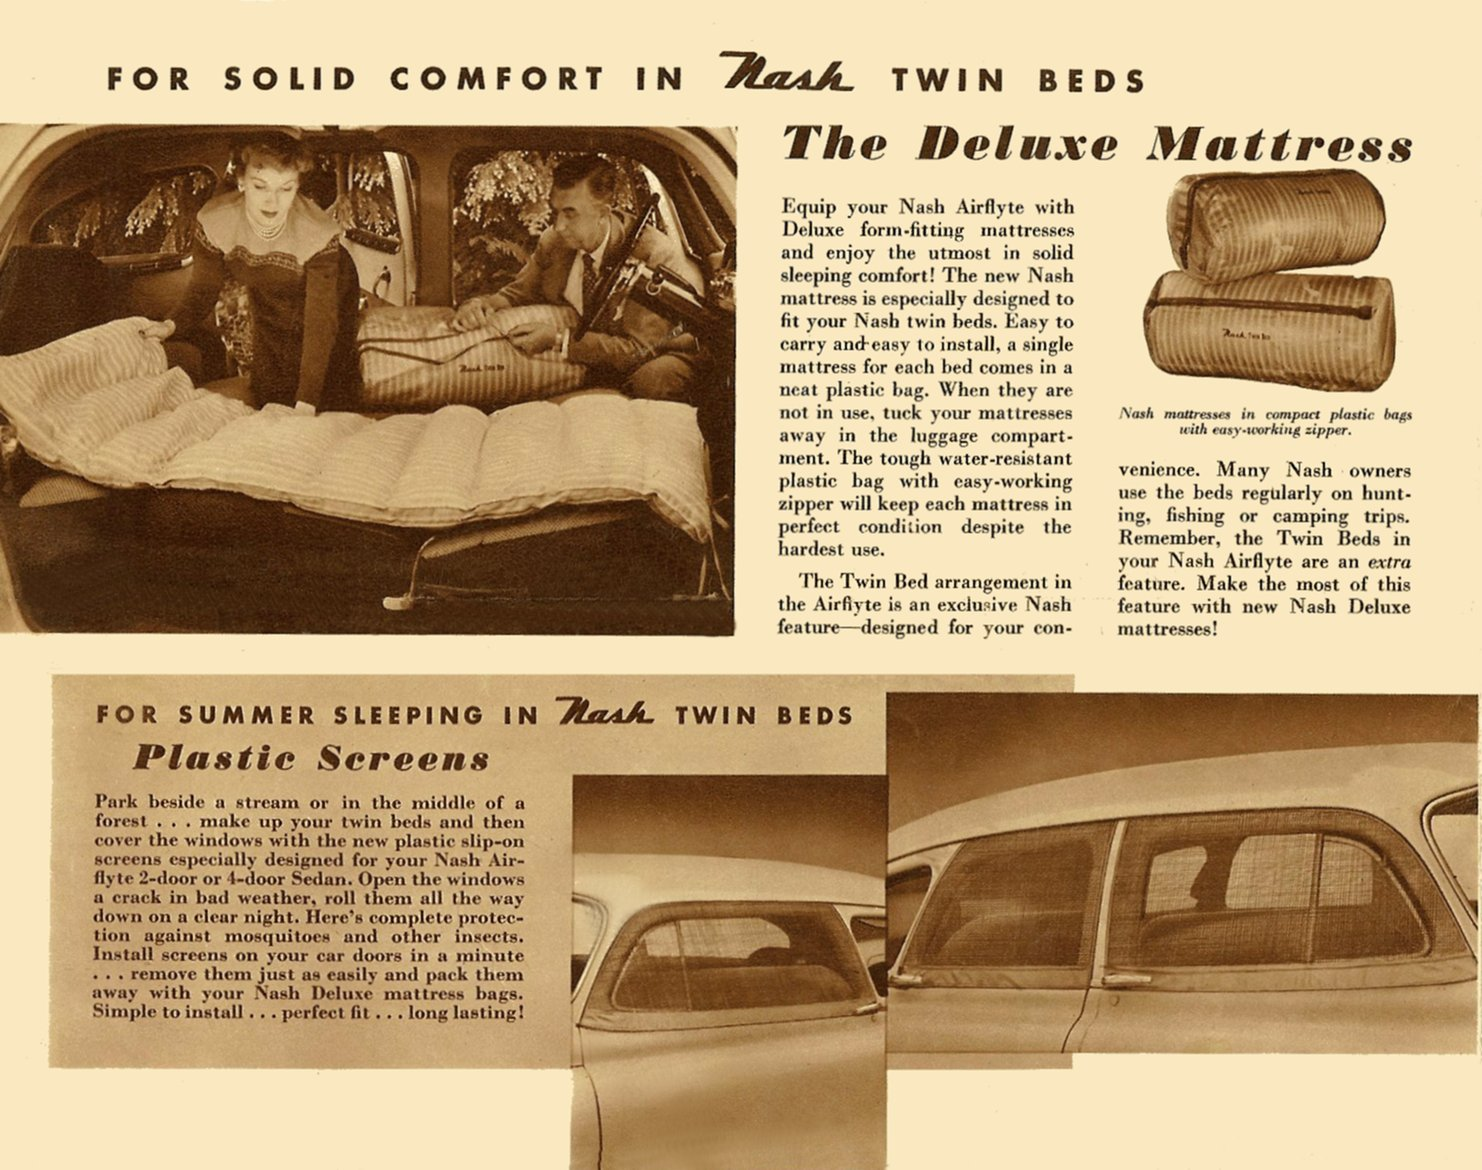 1951 NASH Accessories Nash Airflyte Ambassador – Statesman – Rambler Back Cover Folded: 10″x7.75″ Open: 20″x15.5 NAP50-526-400M-9-50